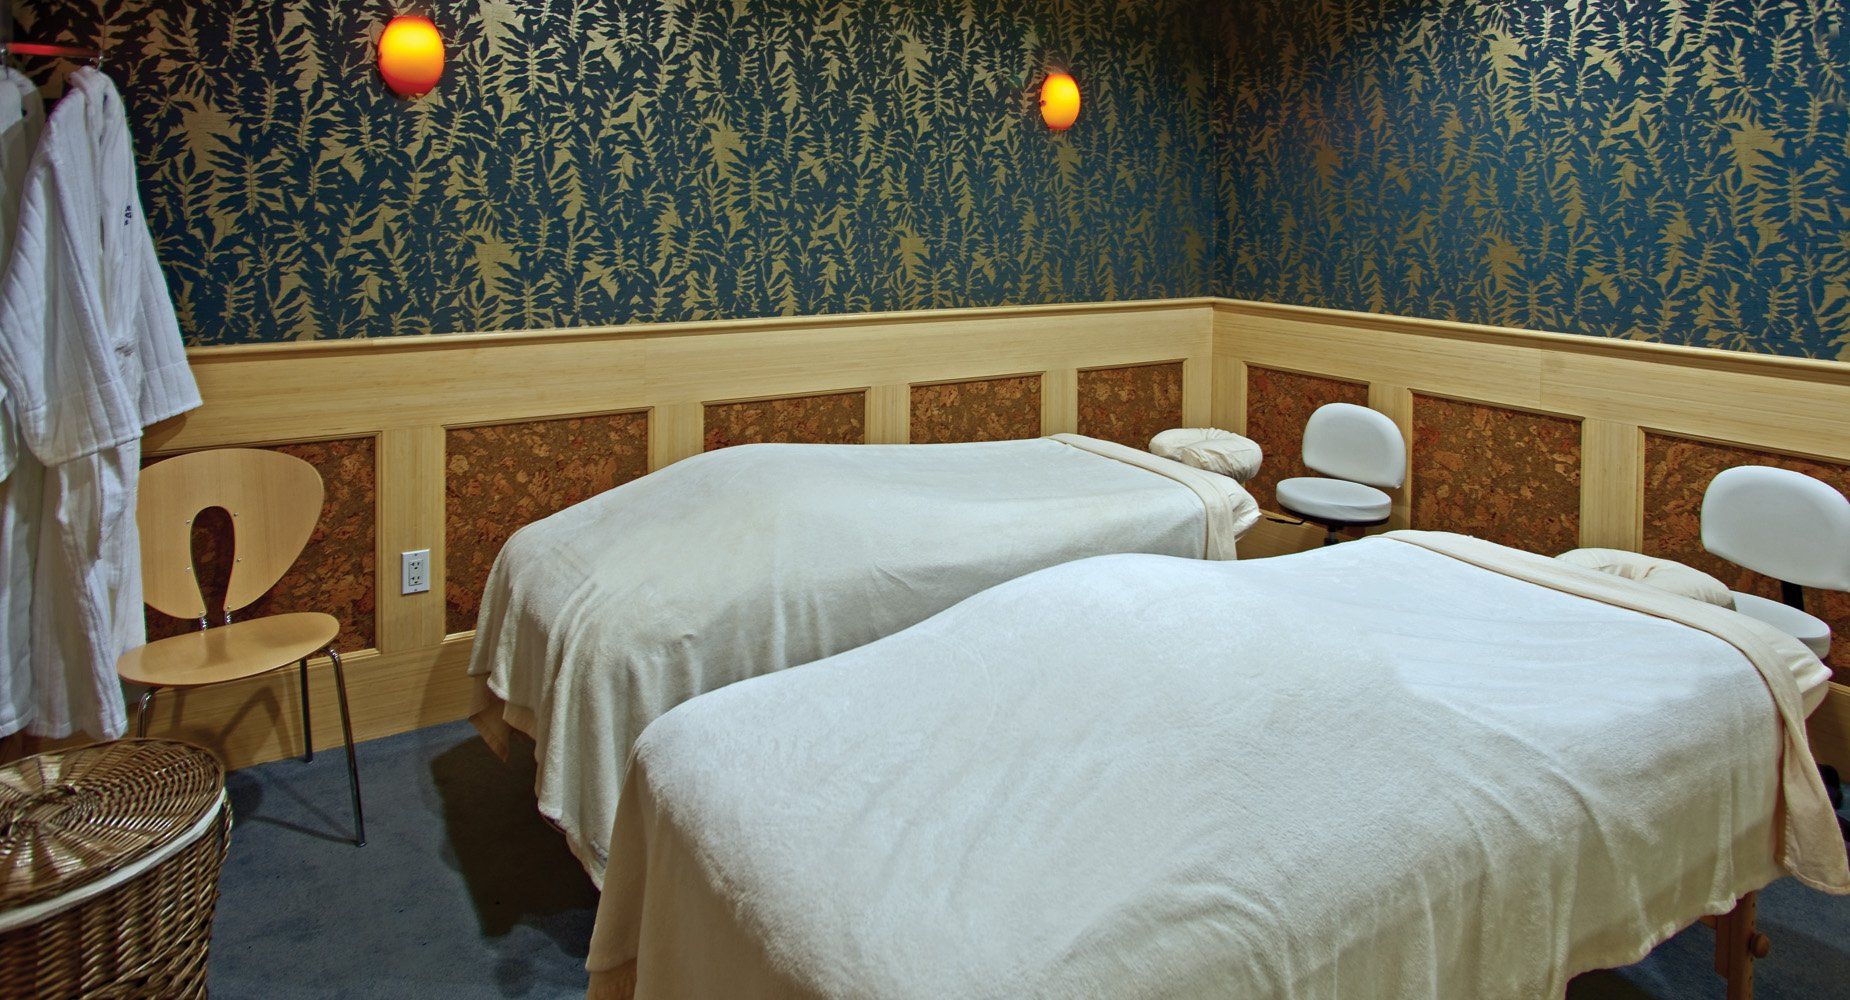 The Spa at Stage Neck is open to the general public. There are specials on weekdays during the off-seasons.